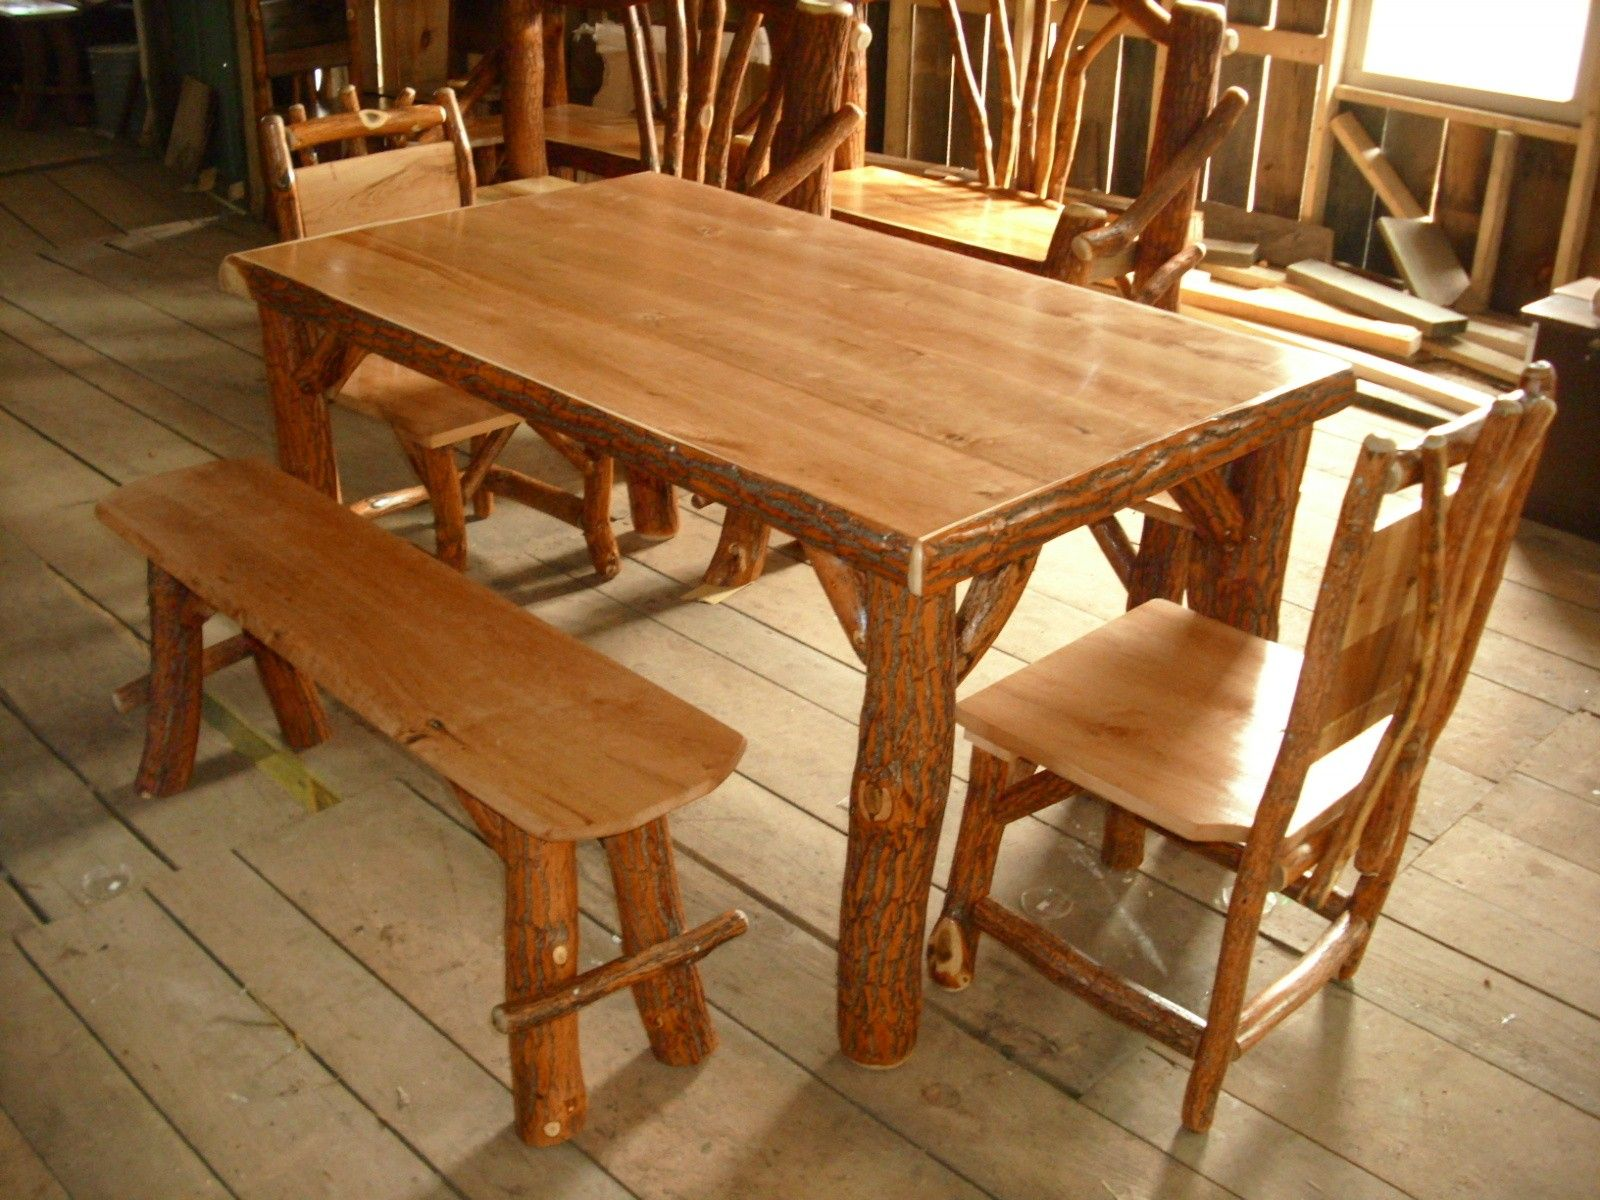 Rustic Log Sassafras Table, Chairs, And Benches Set, Cherry Wood Table Top